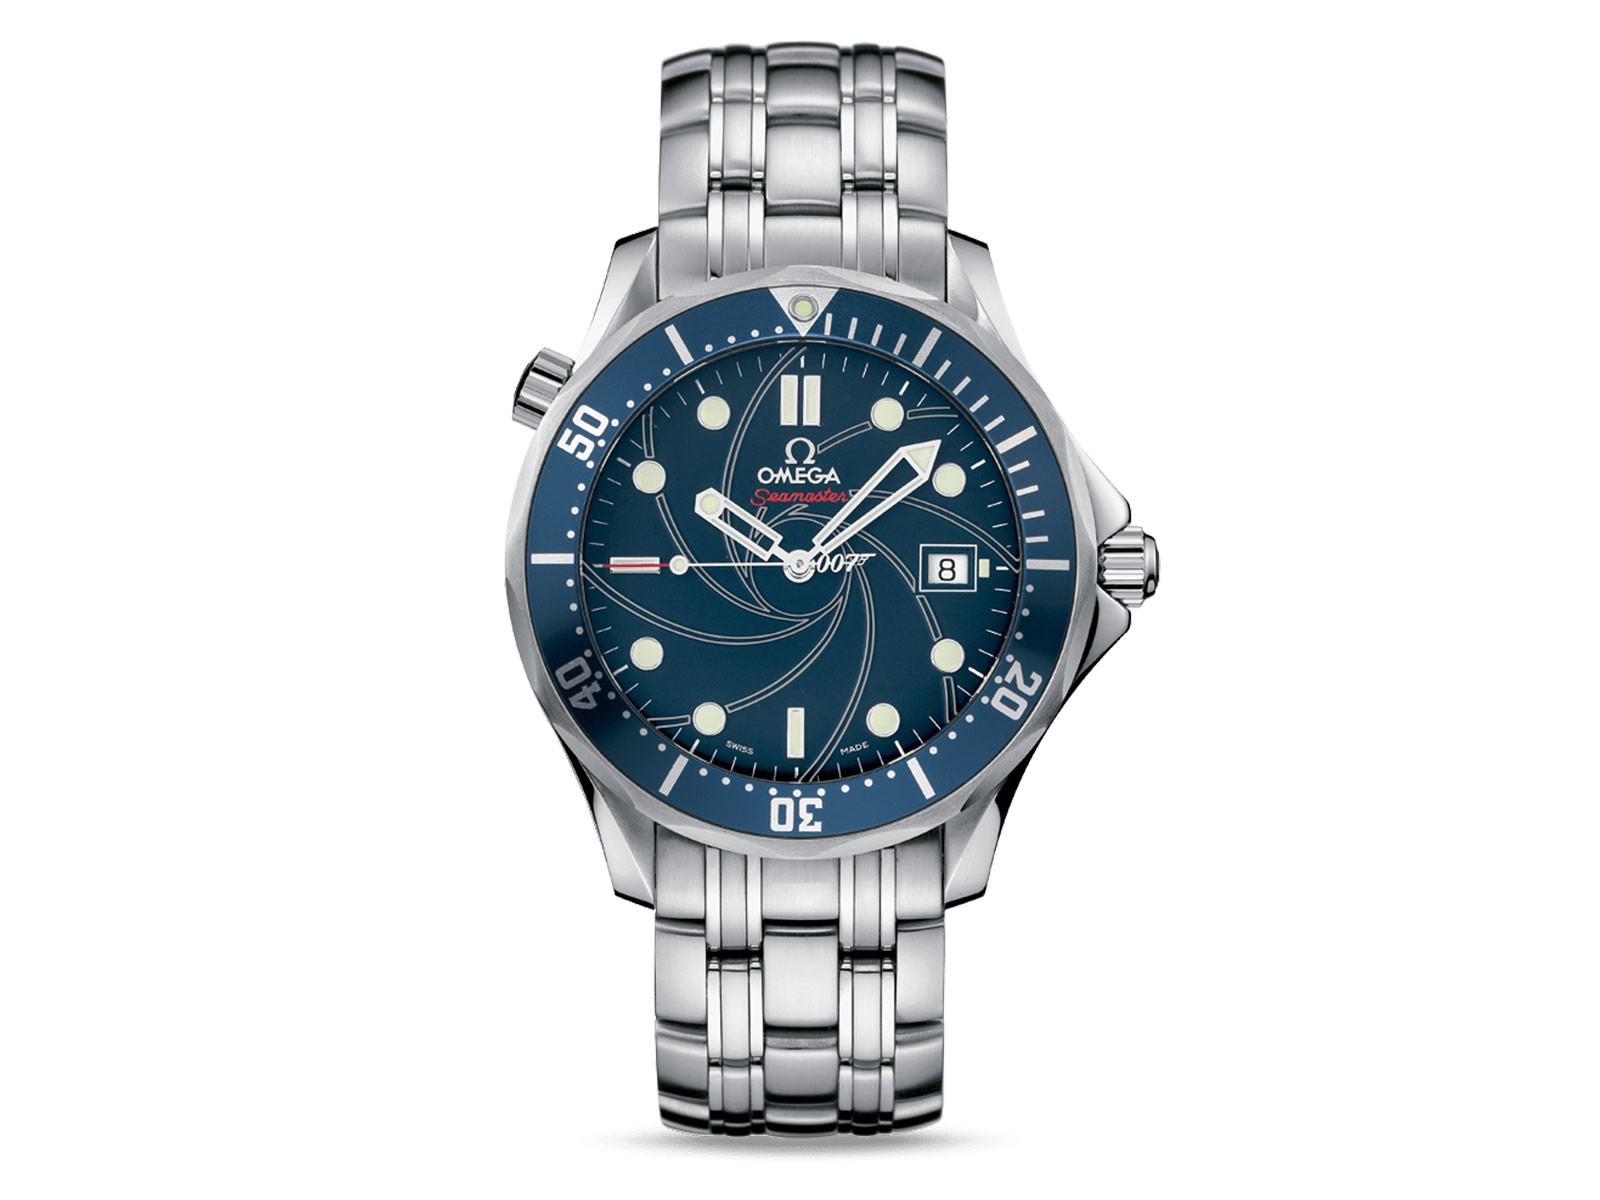 2226-80-00-omega-seamaster-300m-professional-james-bond-limited-edition-.jpg